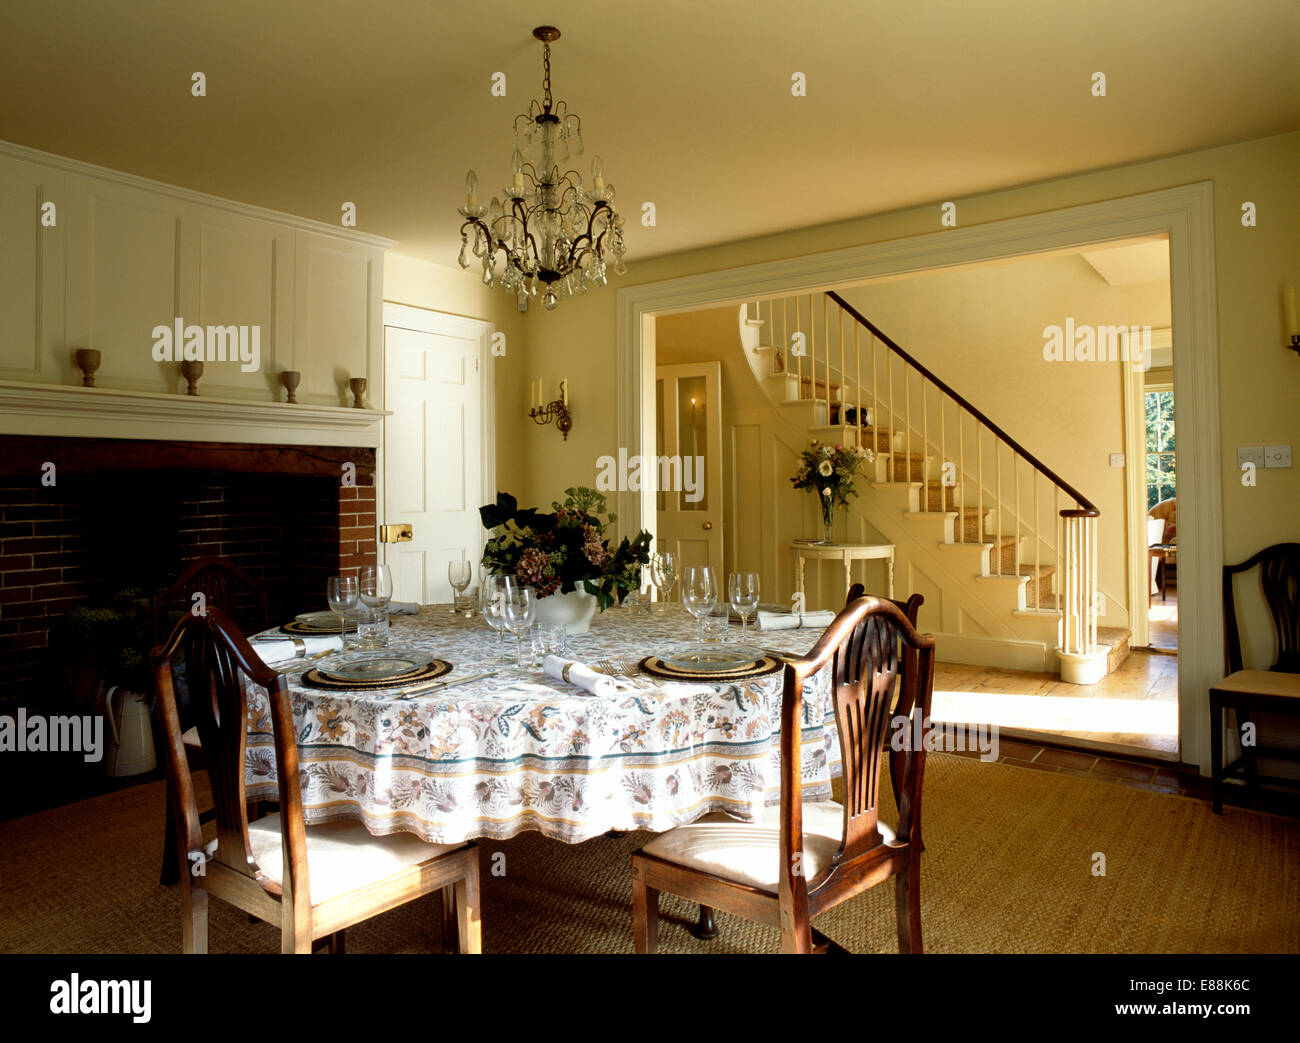 Place settings and floral cloth on table in country dining room with double doorway to hall - Stock Image